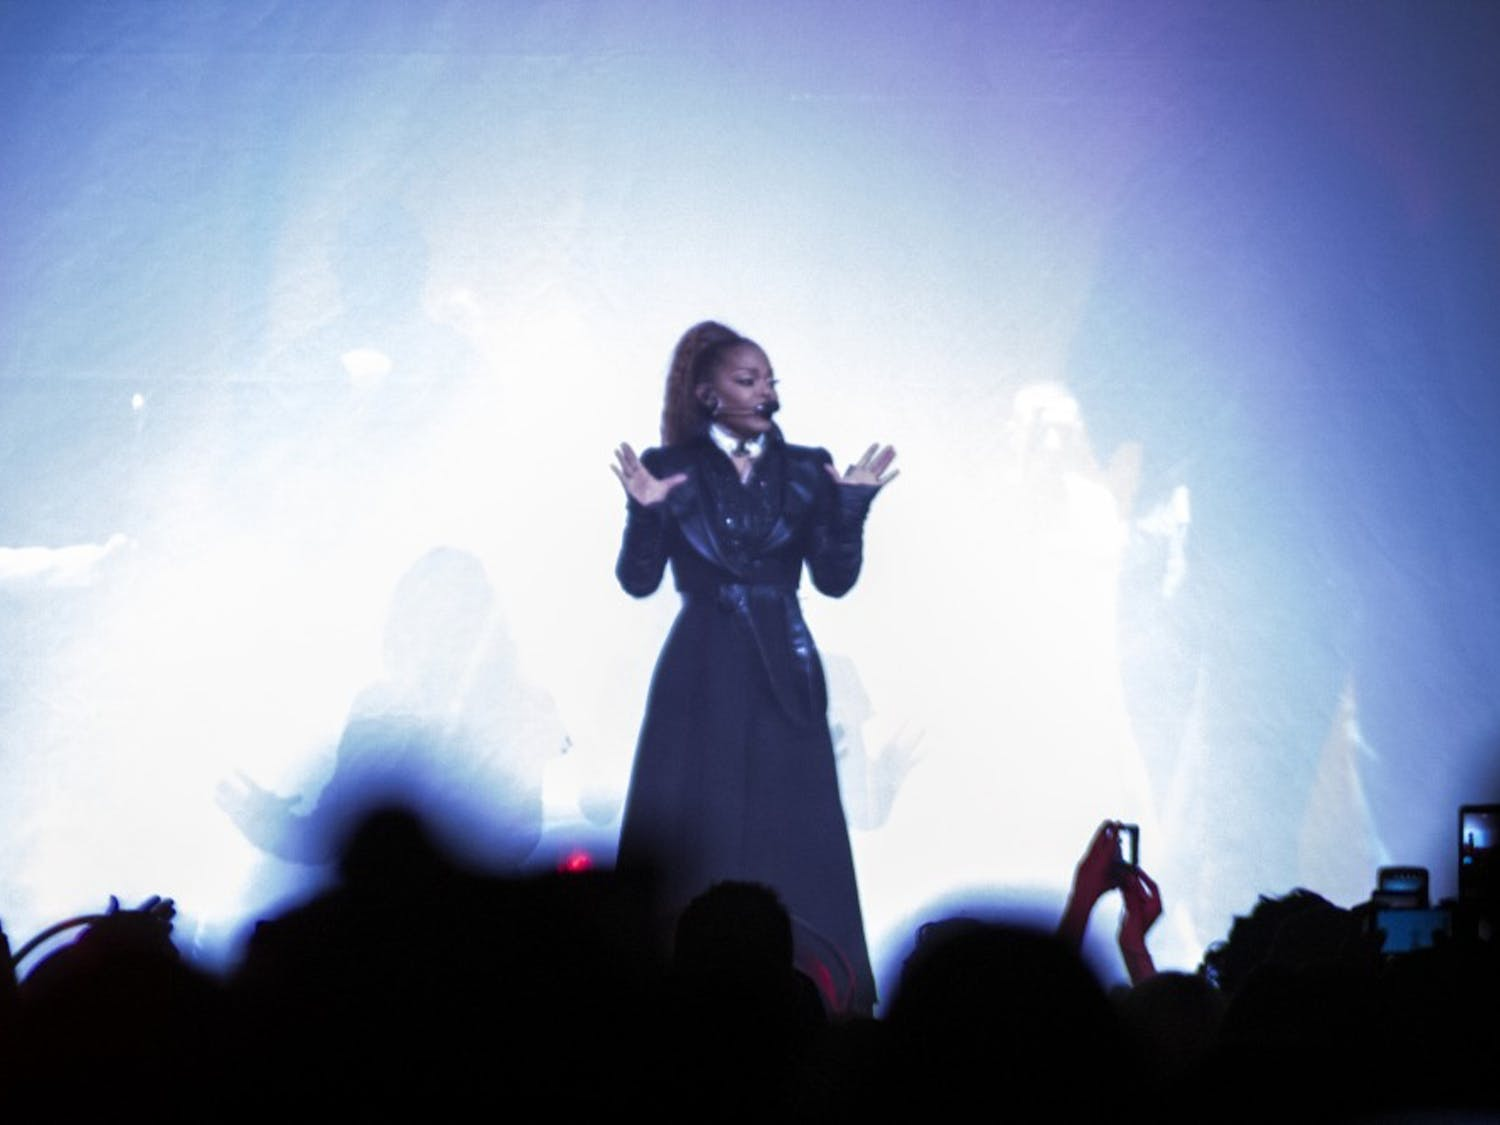 Music icon Janet Jackson performed a medley of hits as part of her State of The World tour in Buffalo on Saturday. Throughout, the multi-talented singer dazzled through synchronized dance and flurries of jams which pleased thousands of fans in attendance.